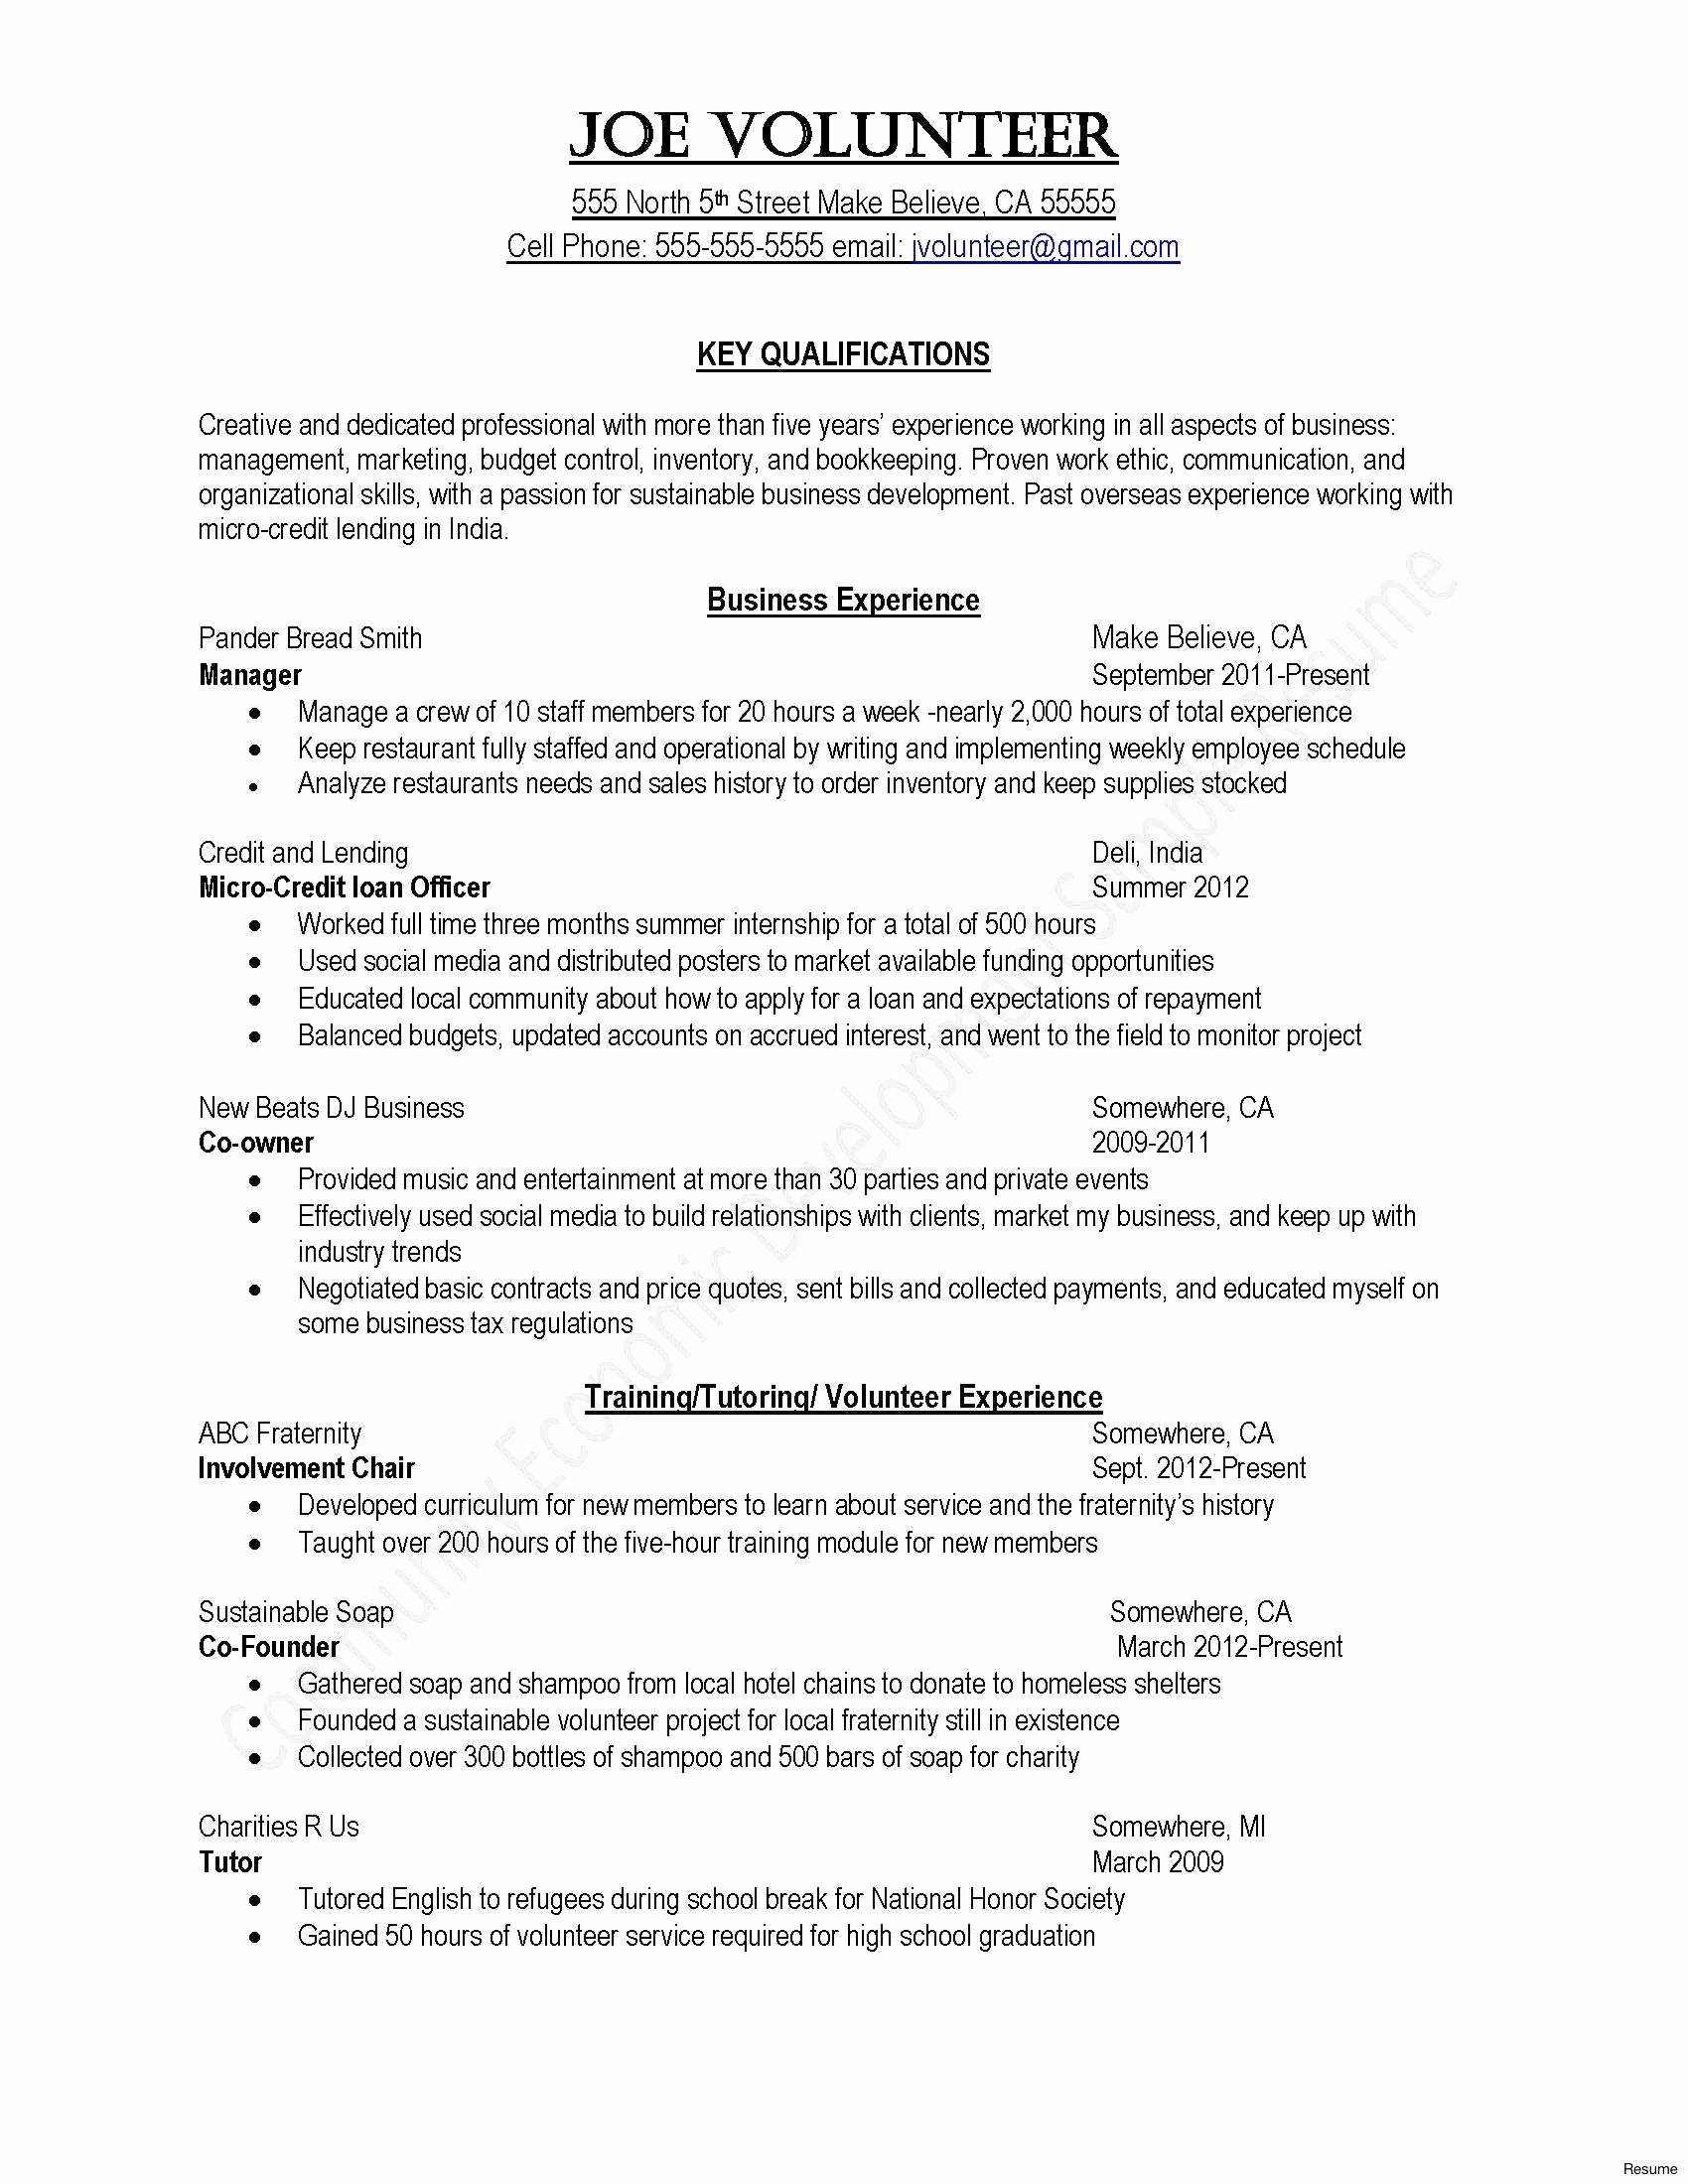 Resume Cover Letter Template Word - Law Enforcement Resume Template Unique Resume Cover Letter Template